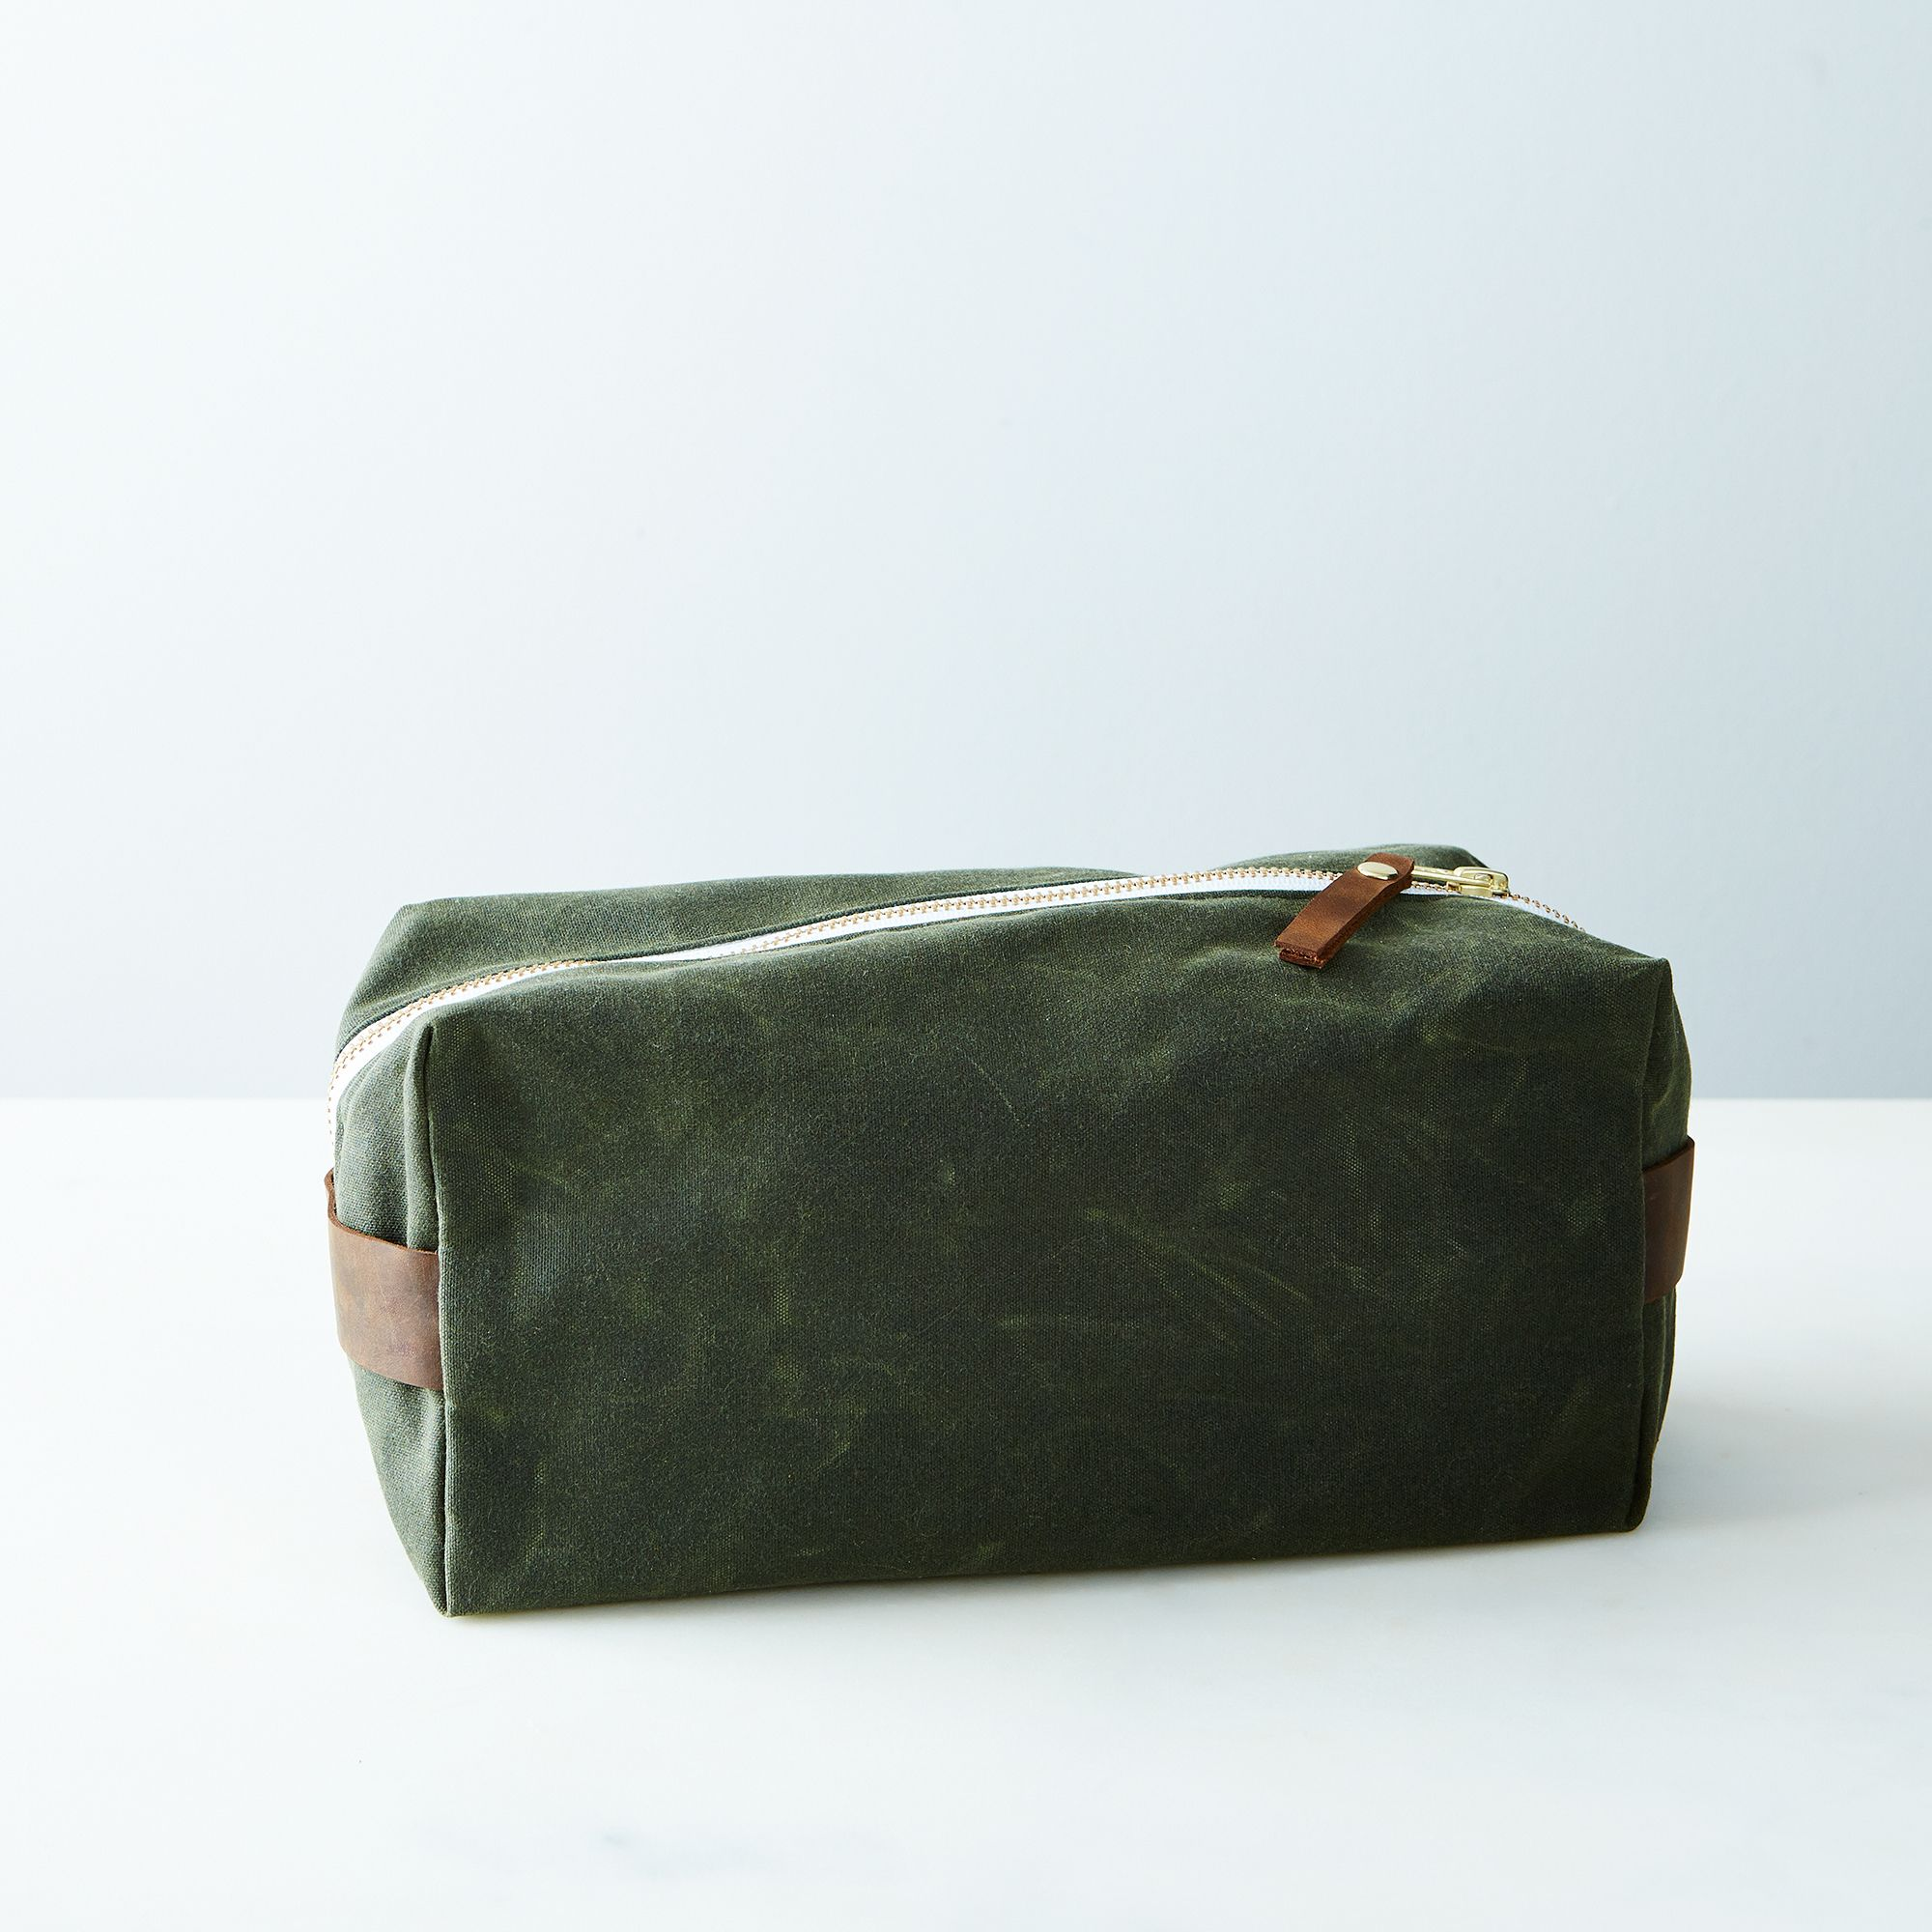 A80d8a46 a0f6 11e5 a190 0ef7535729df  butter design lab waxed canvas toiletries pouch week olive provisions mark weinberg 15 08 14 0948 silo